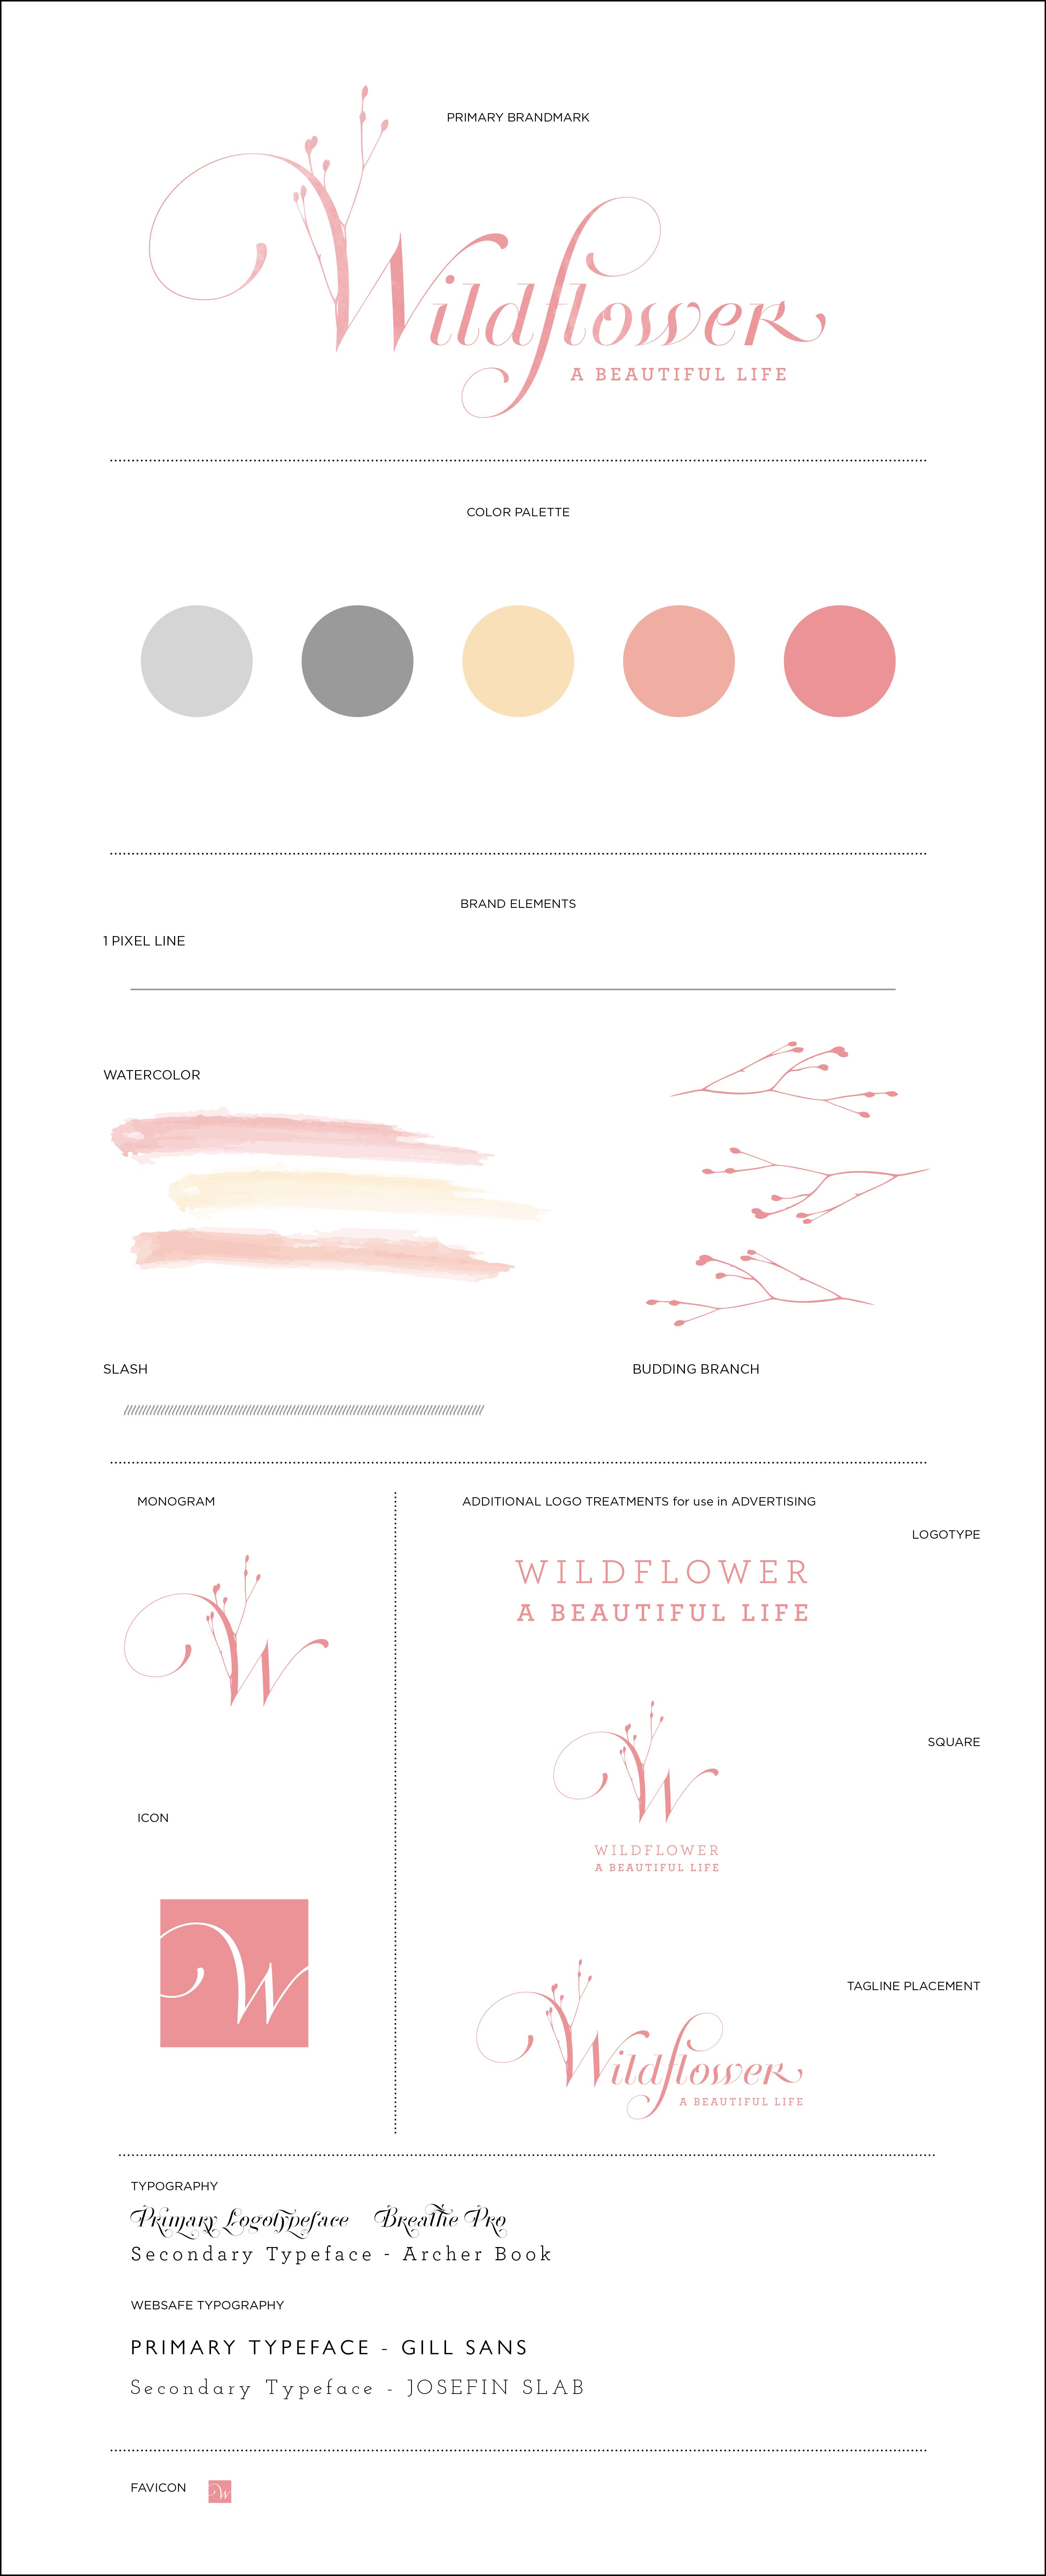 BRAND: Wildflower #blog #okc #interiors #erincooper #cooperhouse #pink #branch